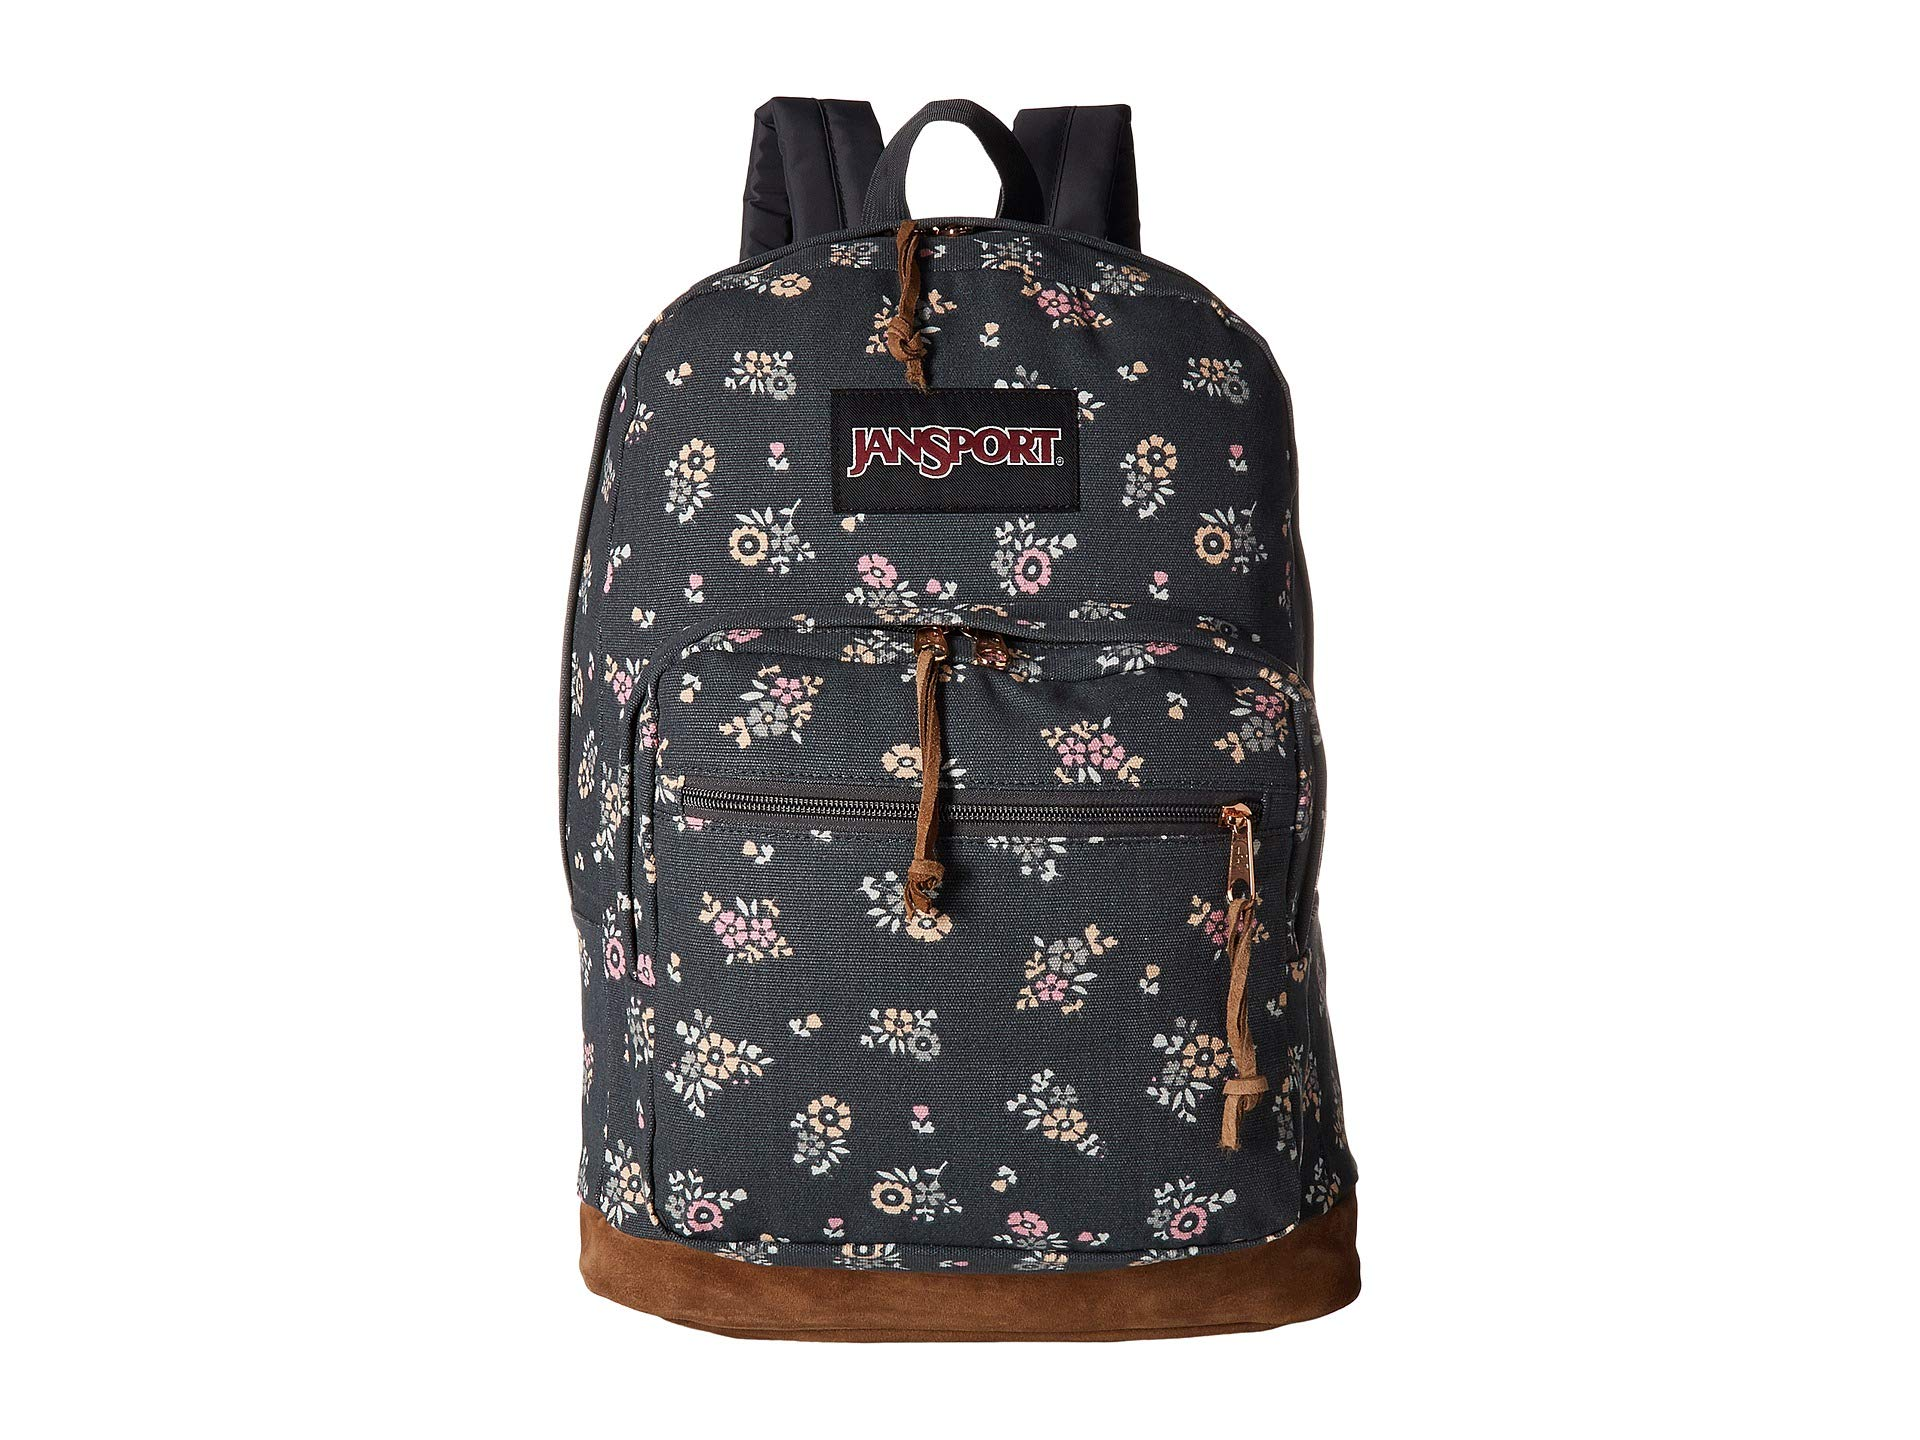 JanSport Right Pack Expressions Laptop Backpack - Tiny Blooms Floral by JanSport